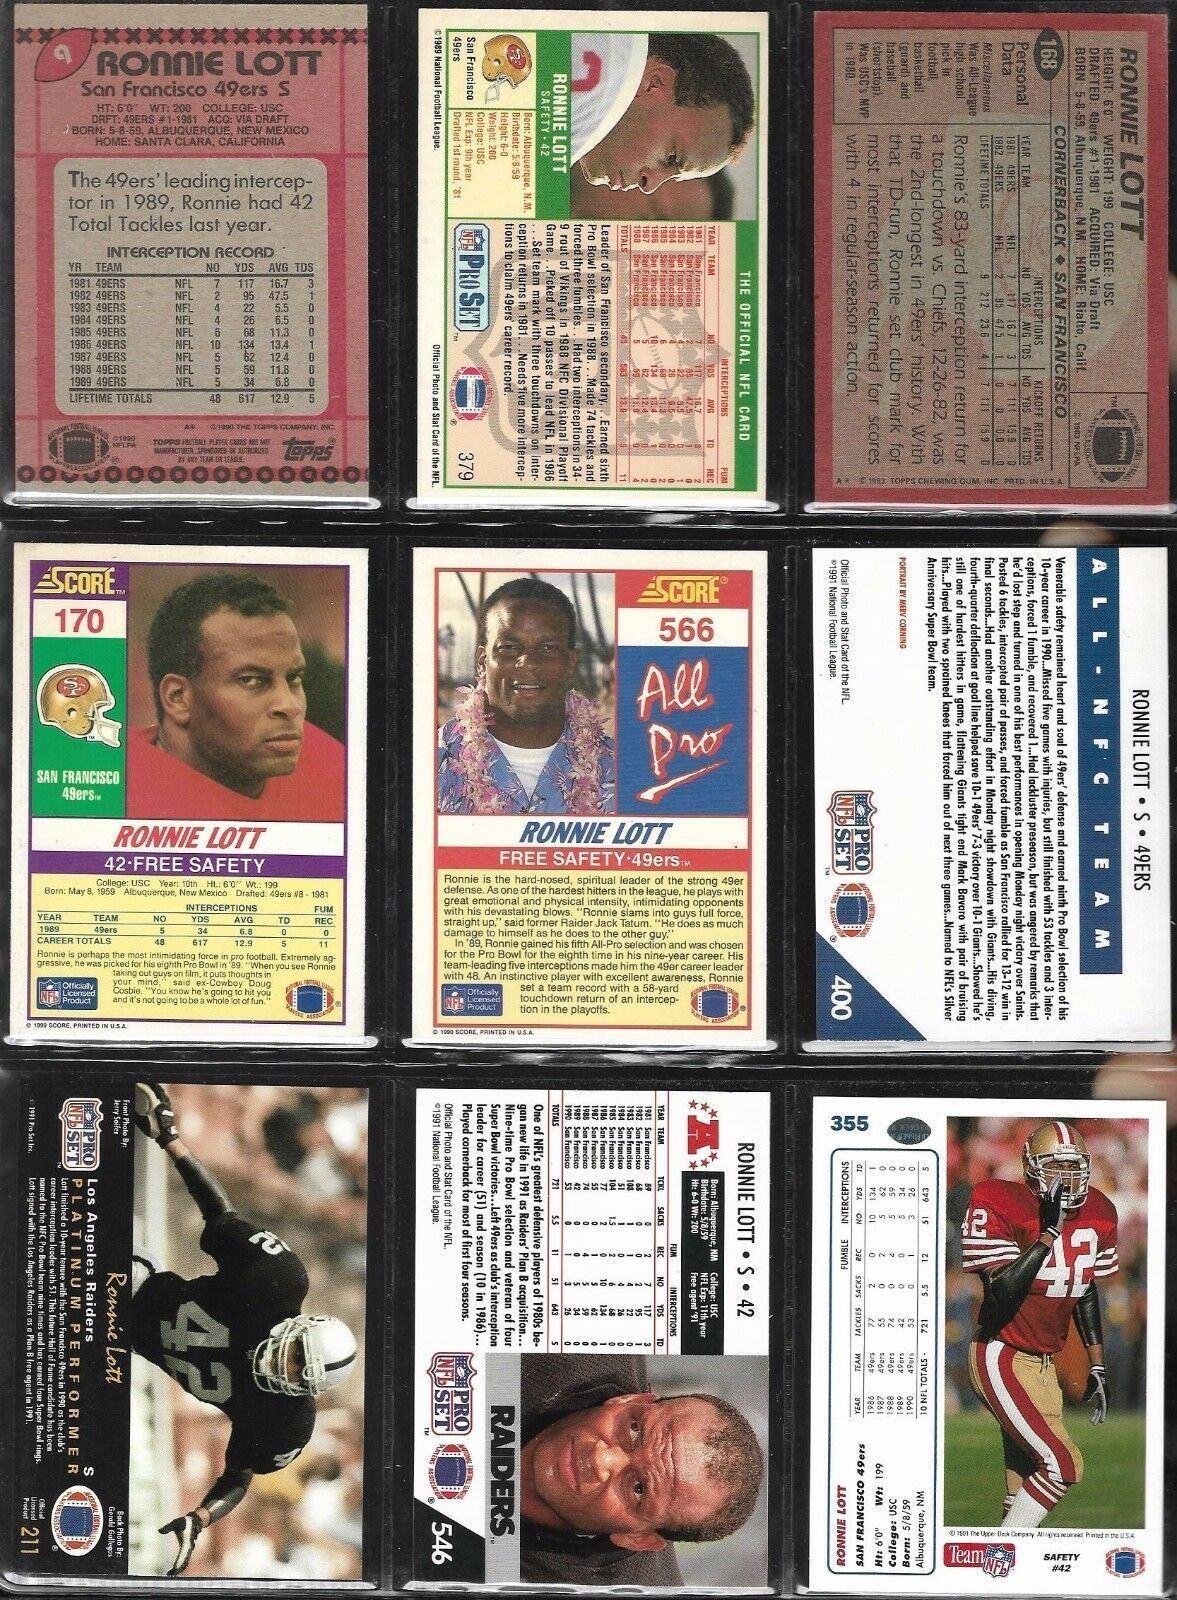 HOF Ronnie Lott San Francisco 49ers L.A. Raiders 1983-91 Topps Football Card Lot